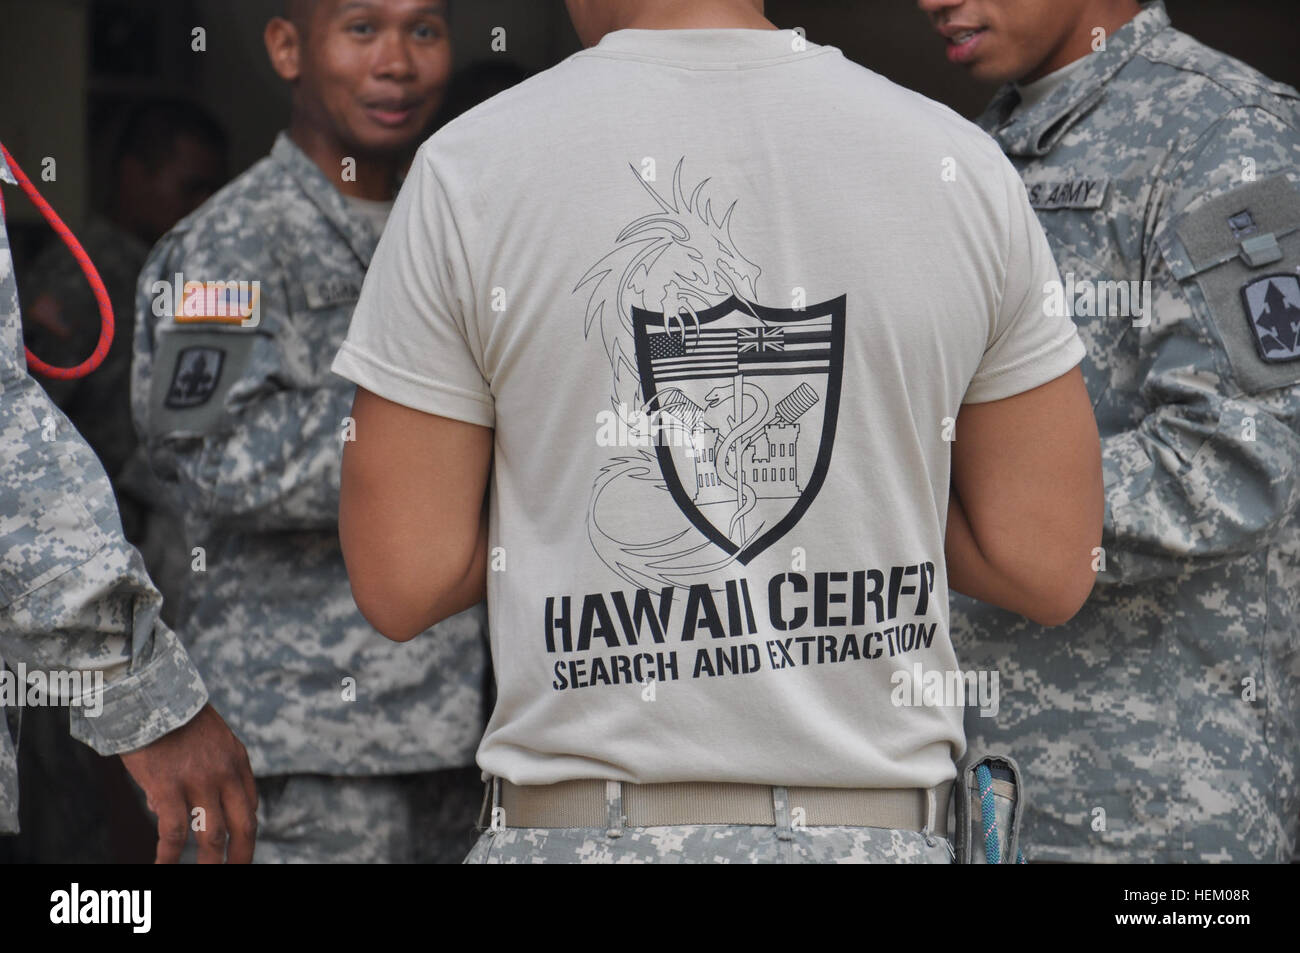 Hawaii's CERFP team practices search and rescue operations in preparation for Asia-Pacific Economic Cooperation. - Stock Image